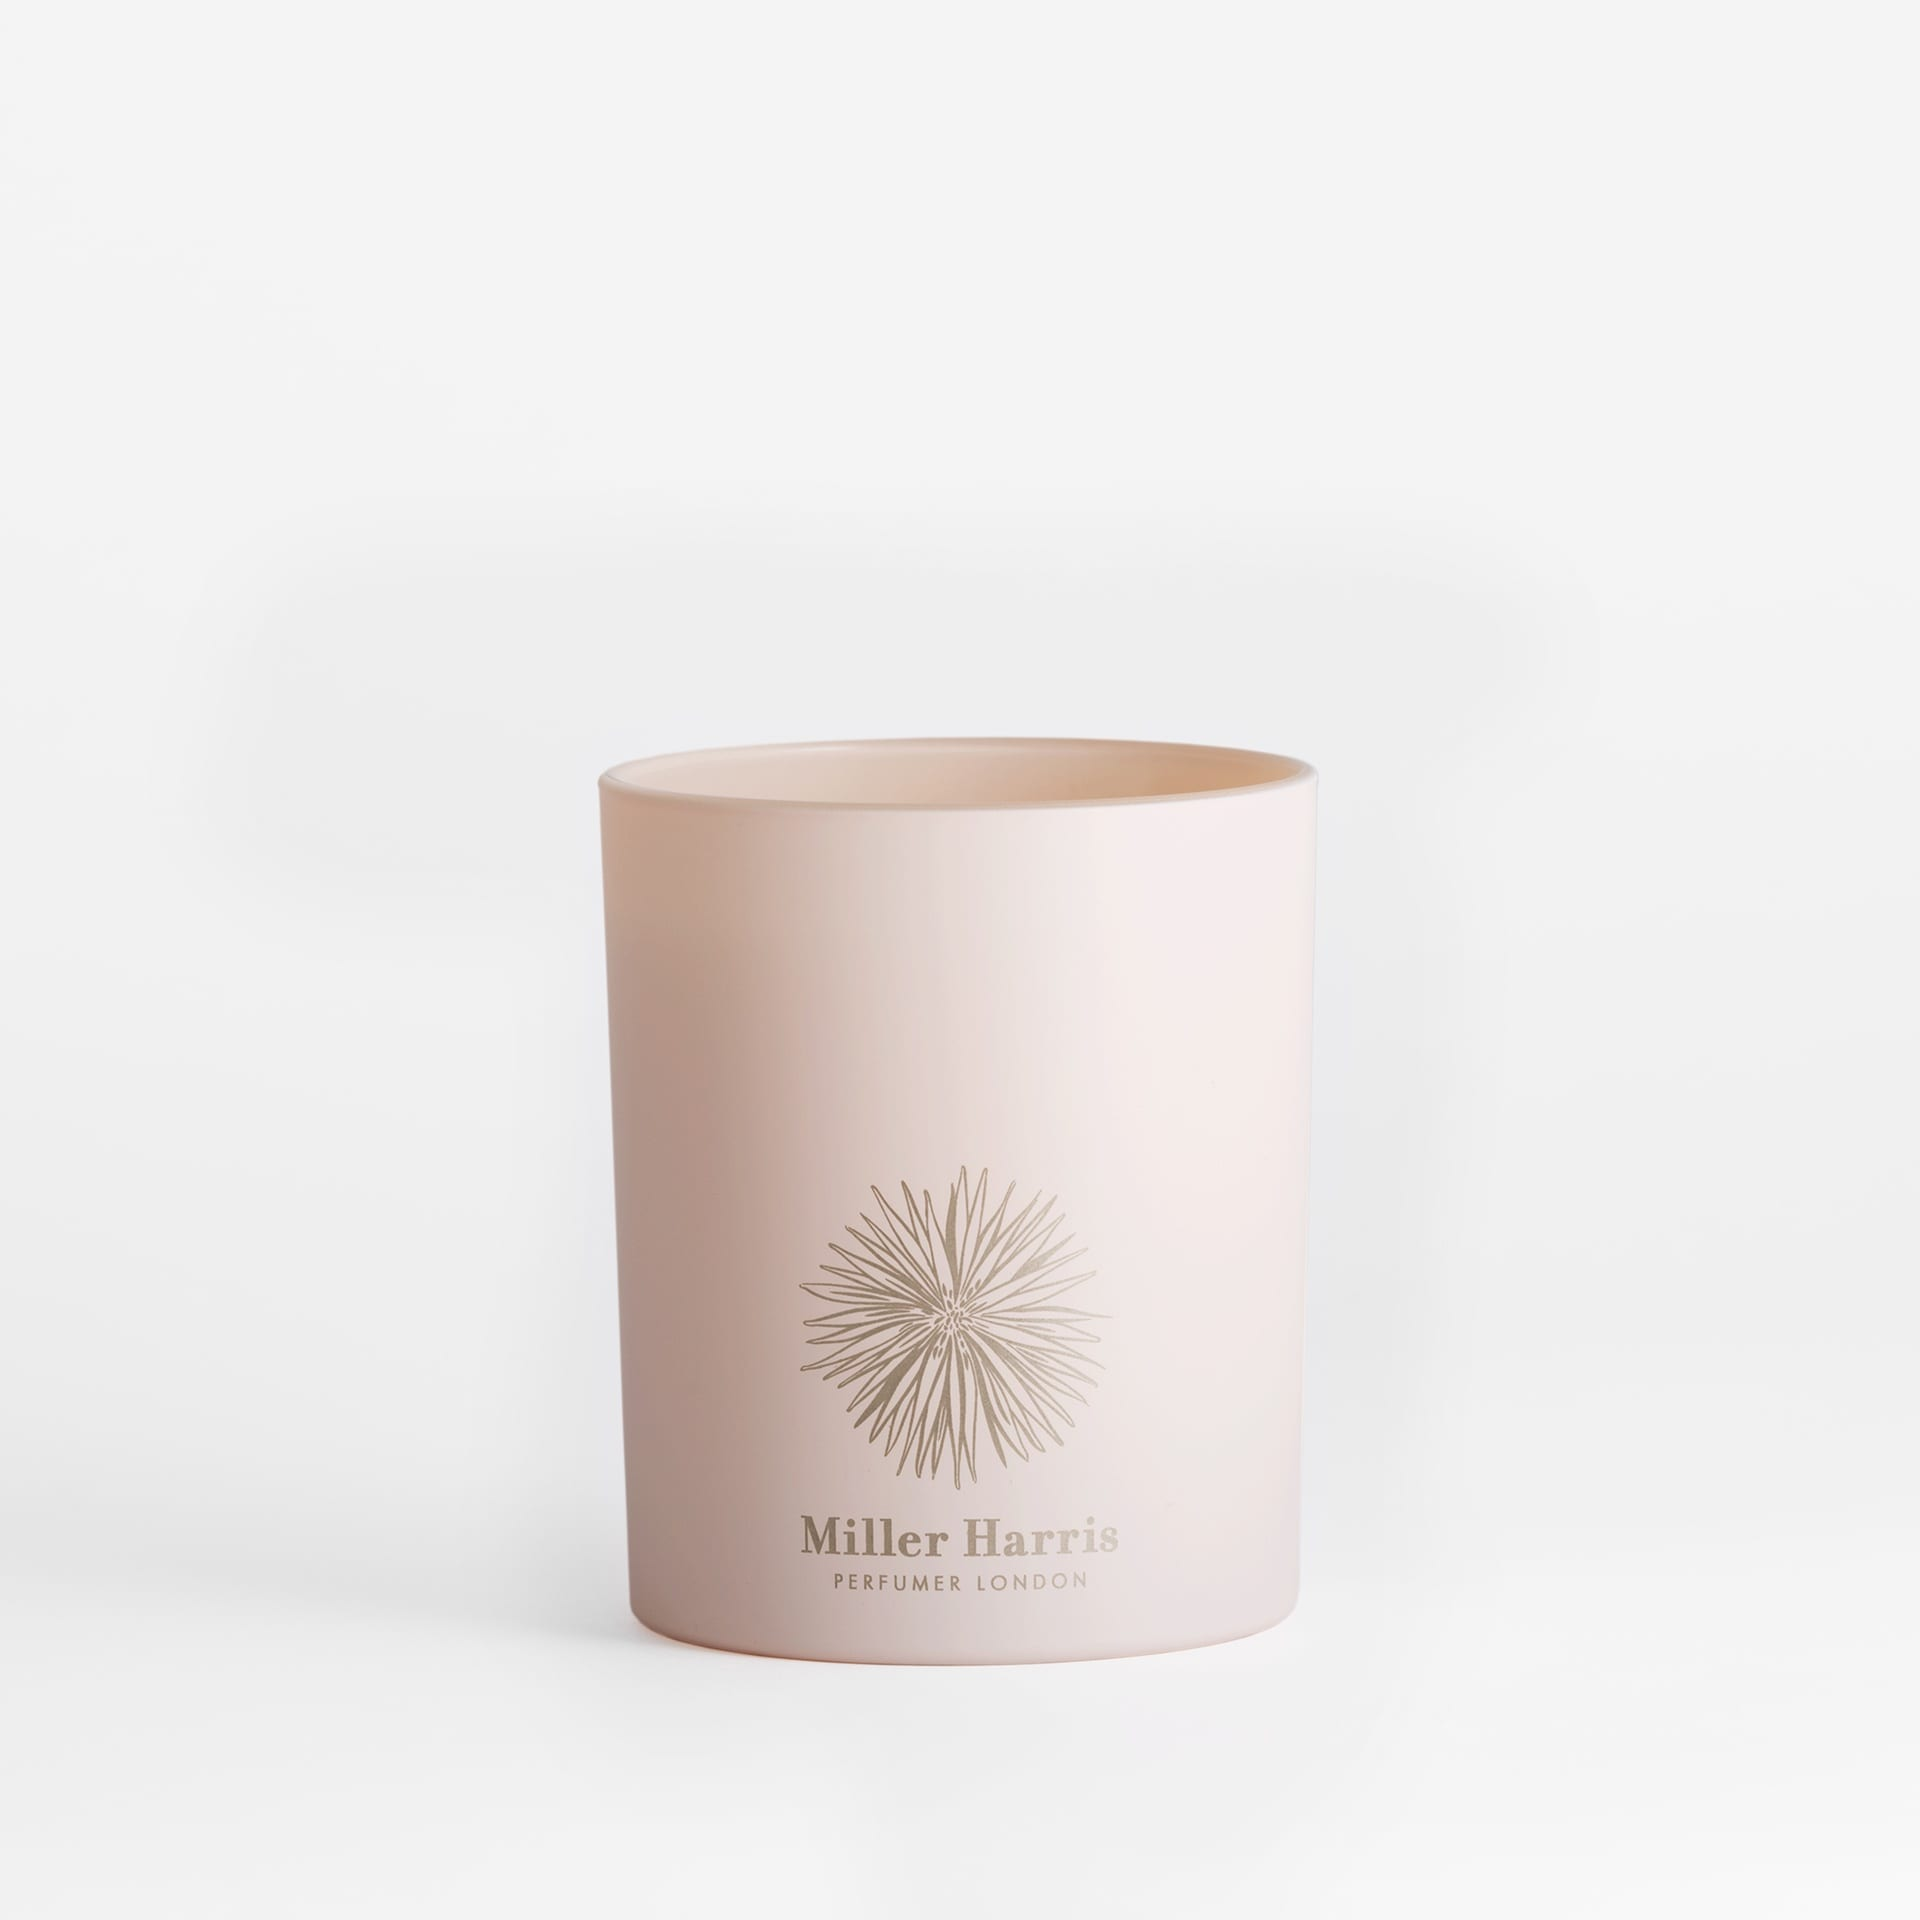 Miller Harris Luxury Scented Candle Digne de Toi